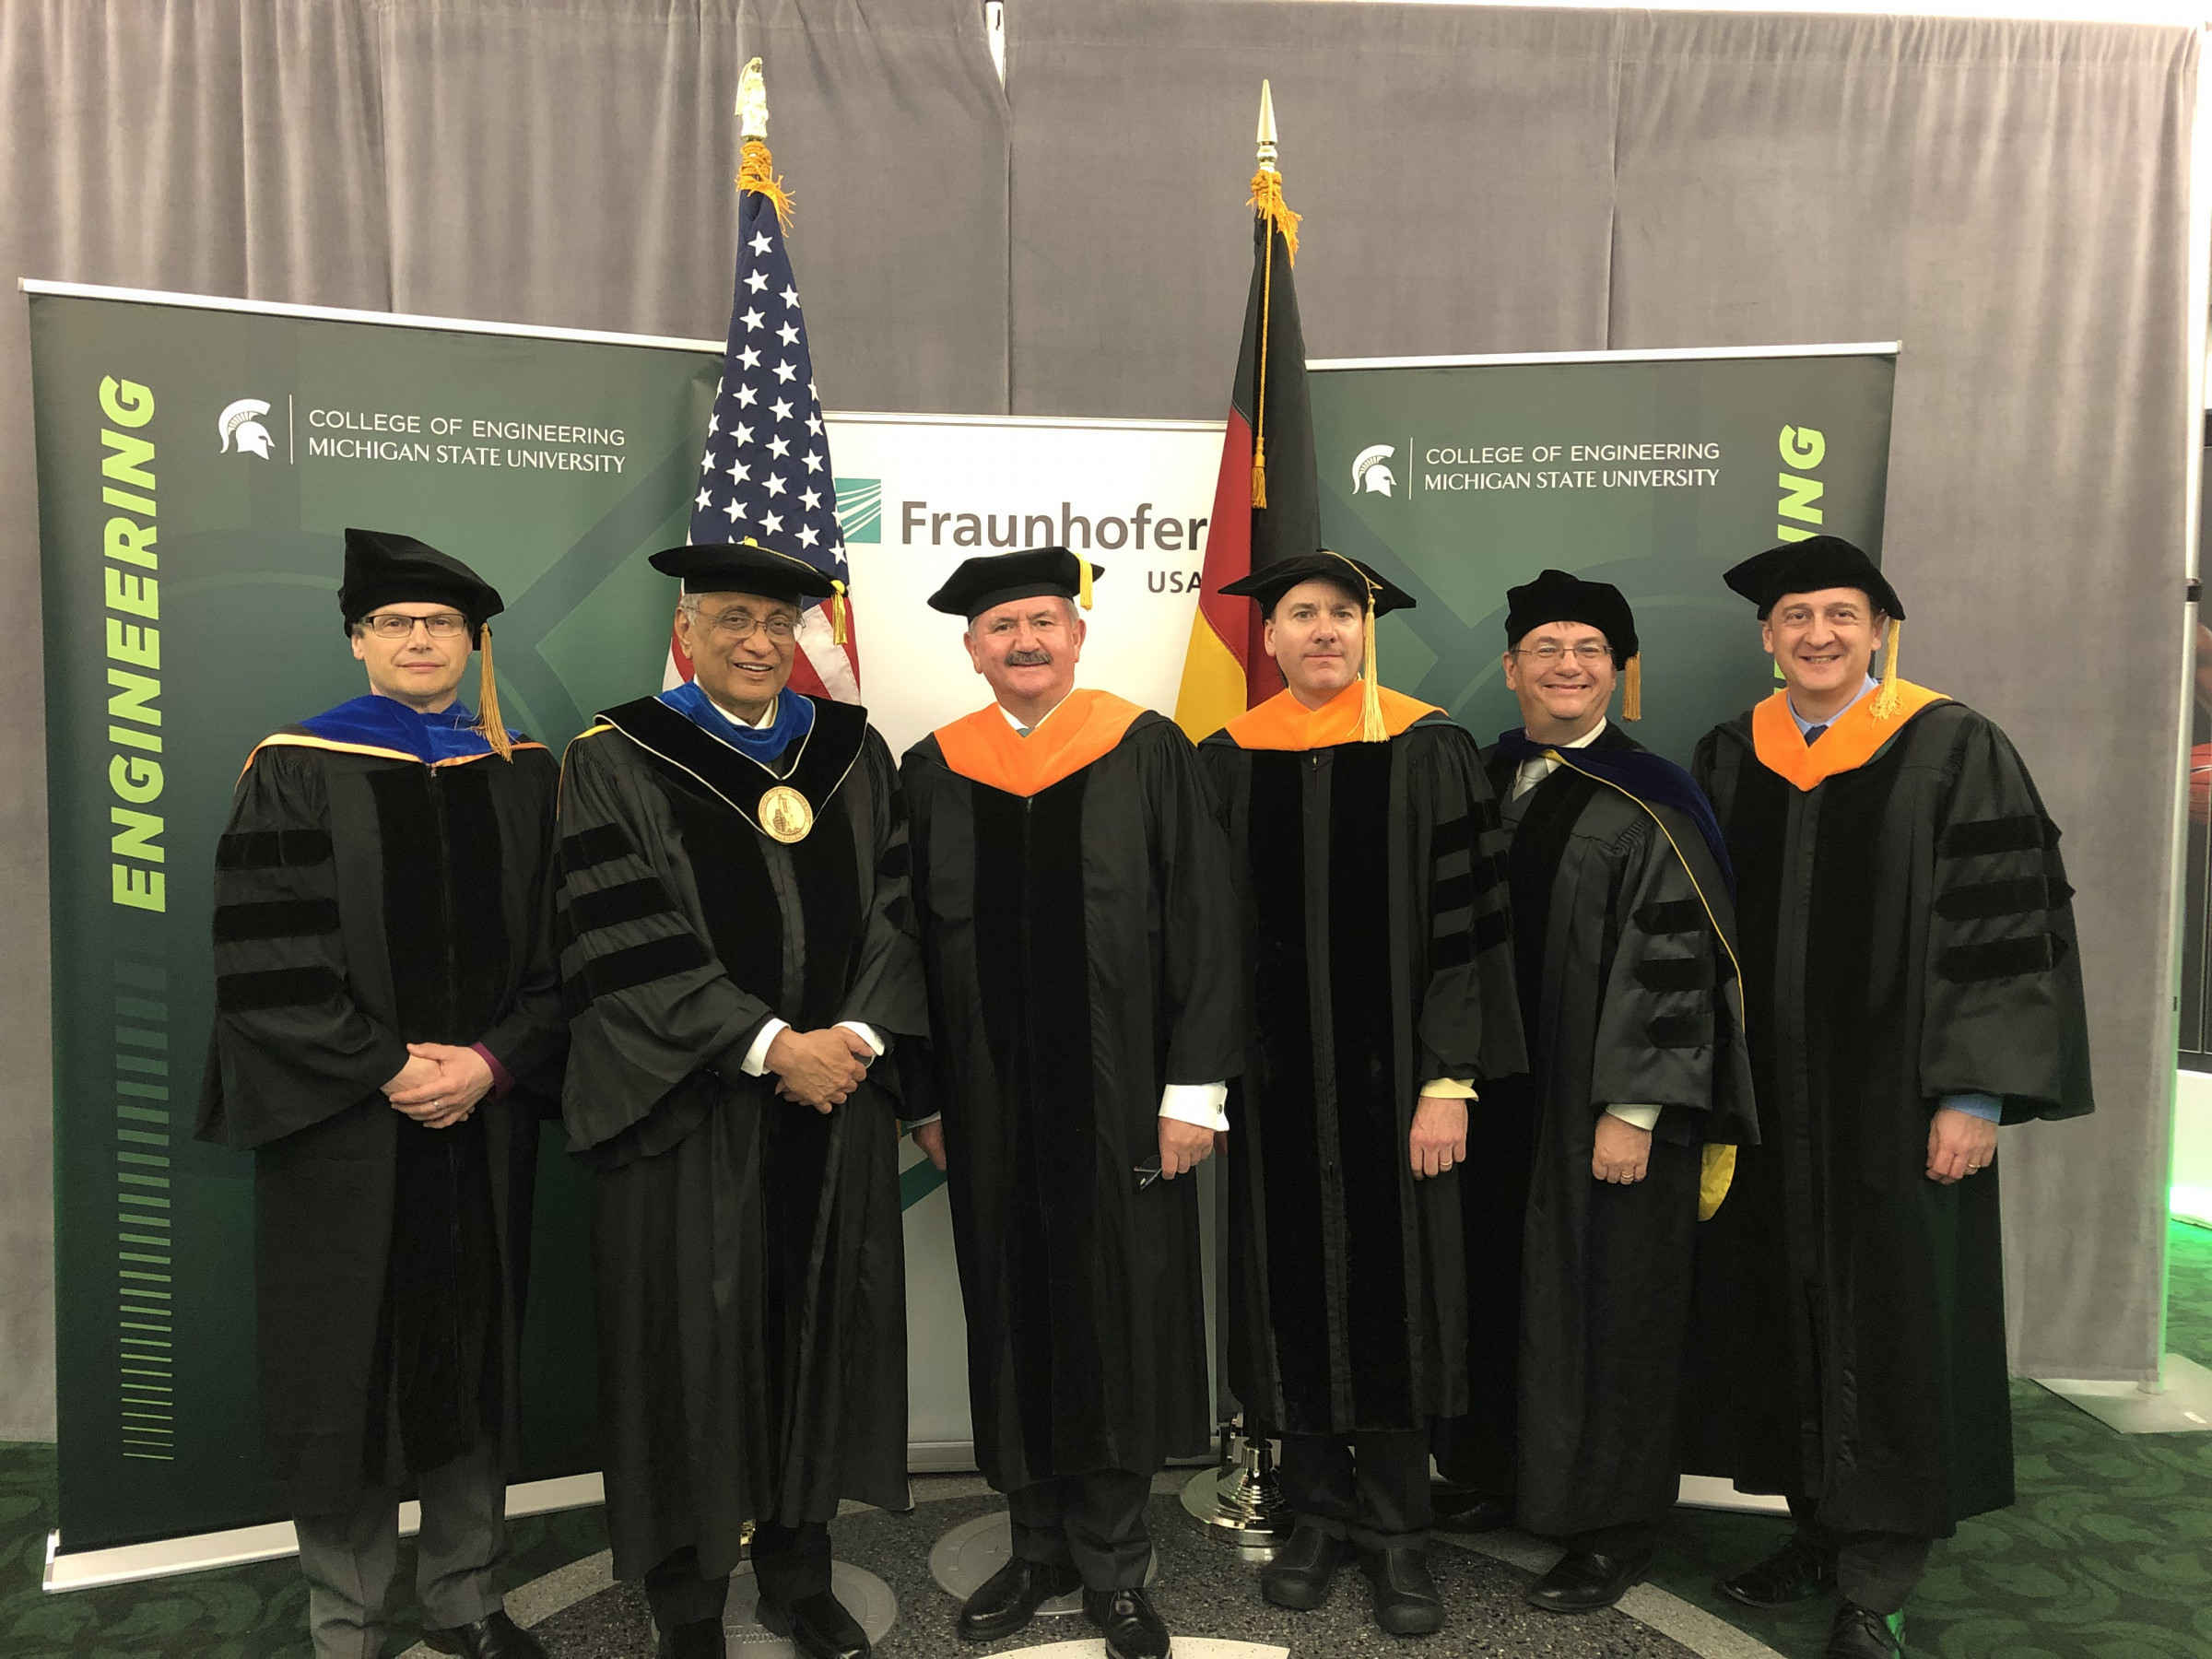 Celebrating the 15-year history of Fraunhofer USA and MSU were (from left) Thomas Schuelke, Acting MSU President Satish Udpa, President of Fraunhofer-Gesellschaft Reimund Neugebauer, John Albrecht, Dean Leo Kempel, and John Papapolymerou, prior to Commencement on May 3.